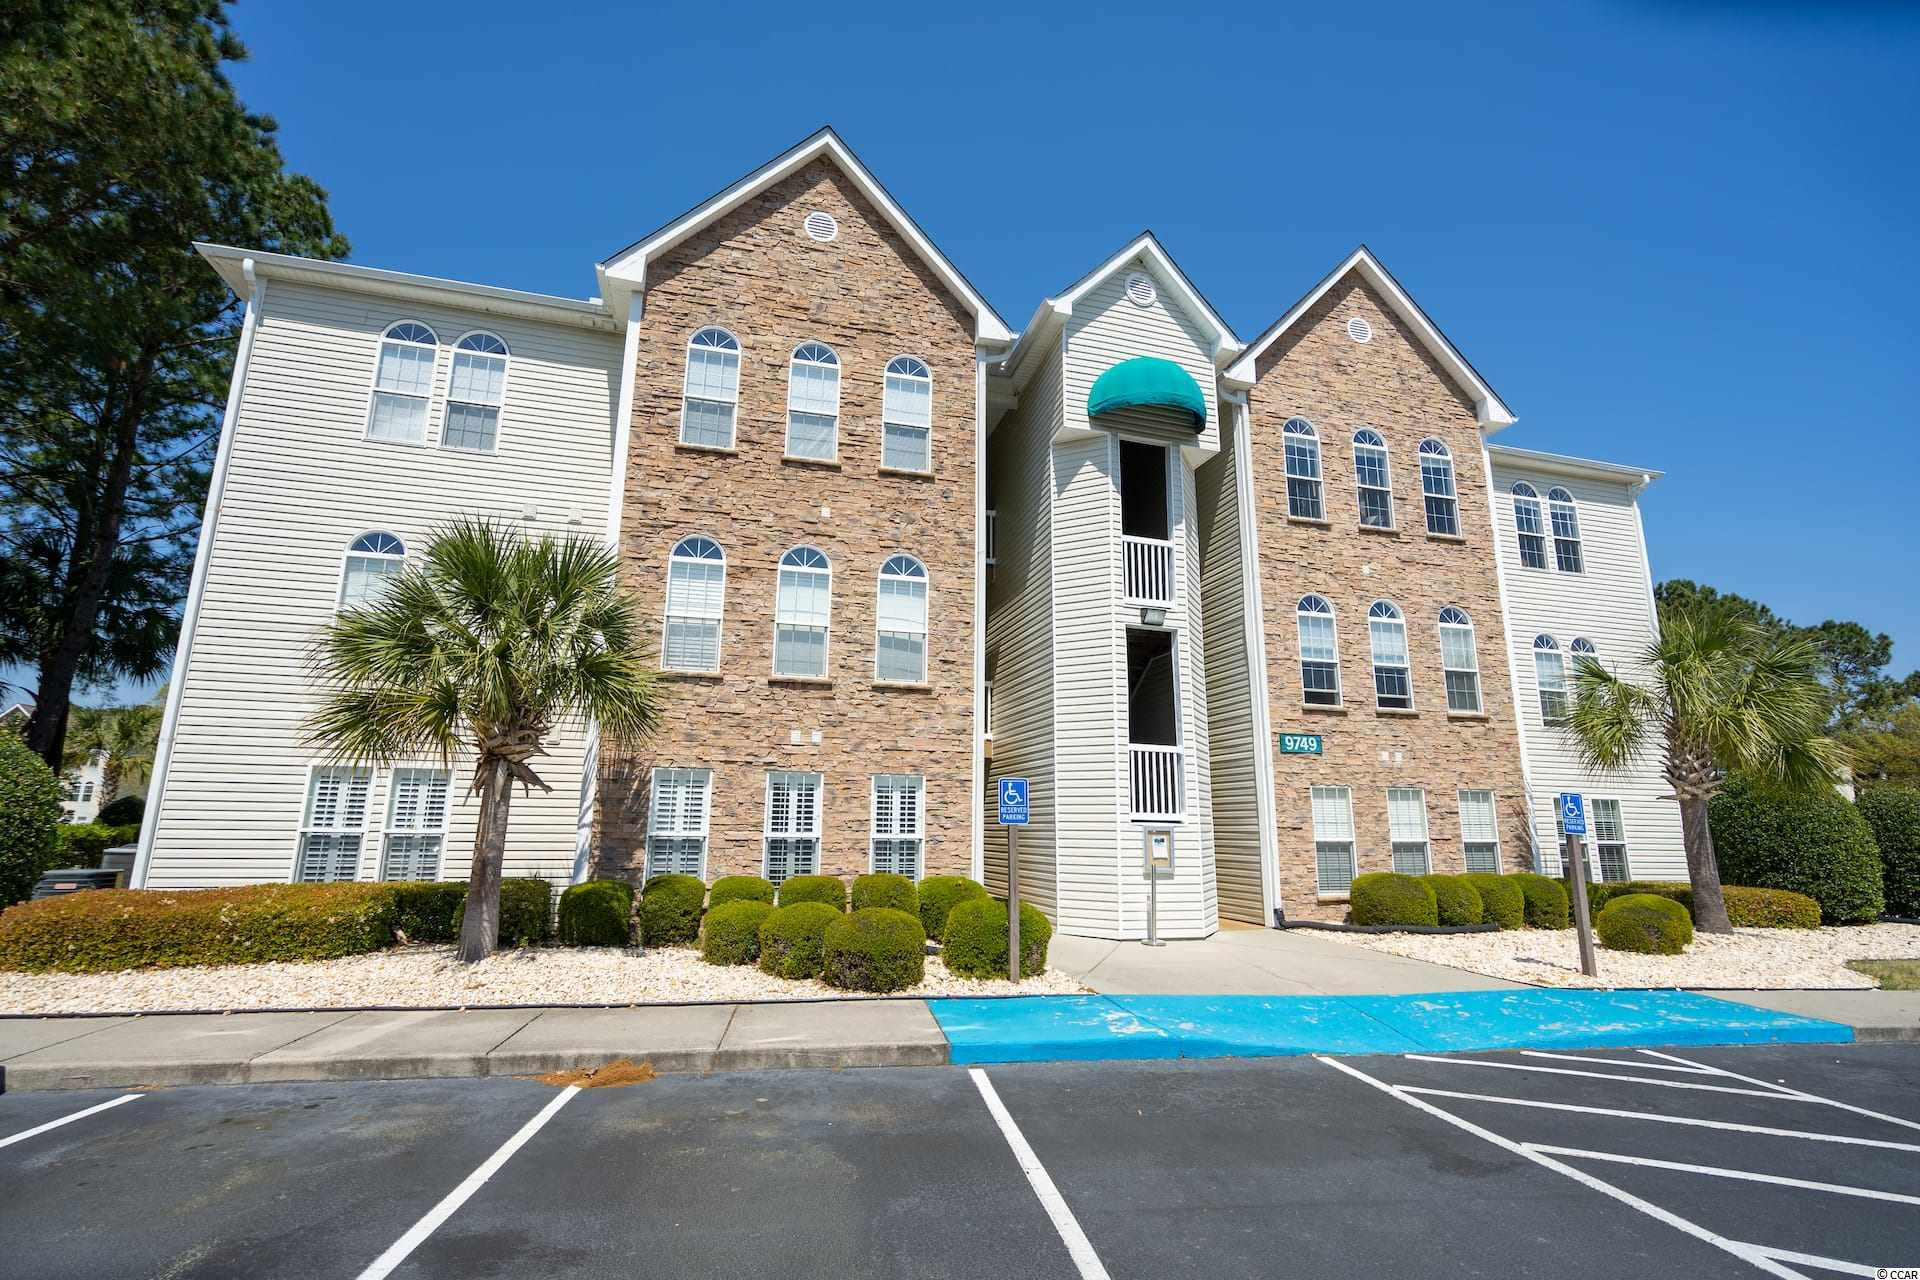 Located in the gated community of Savannah Shores, this 2BR/2BA condo won't last long.  This first floor unit features granite countertops, stainless steel appliances, a bright and cheery sunroom, a large storage closet and spacious bedrooms.  Community amenities include a pool, tennis courts, volleyball, a putting green and play area.  Golf carts are permitted.  Savannah Shores is conveniently located just minutes to the beach, shopping, groceries and restaurants.  Information is deemed reliable, but not guaranteed.  Buyer is responsible for verification.